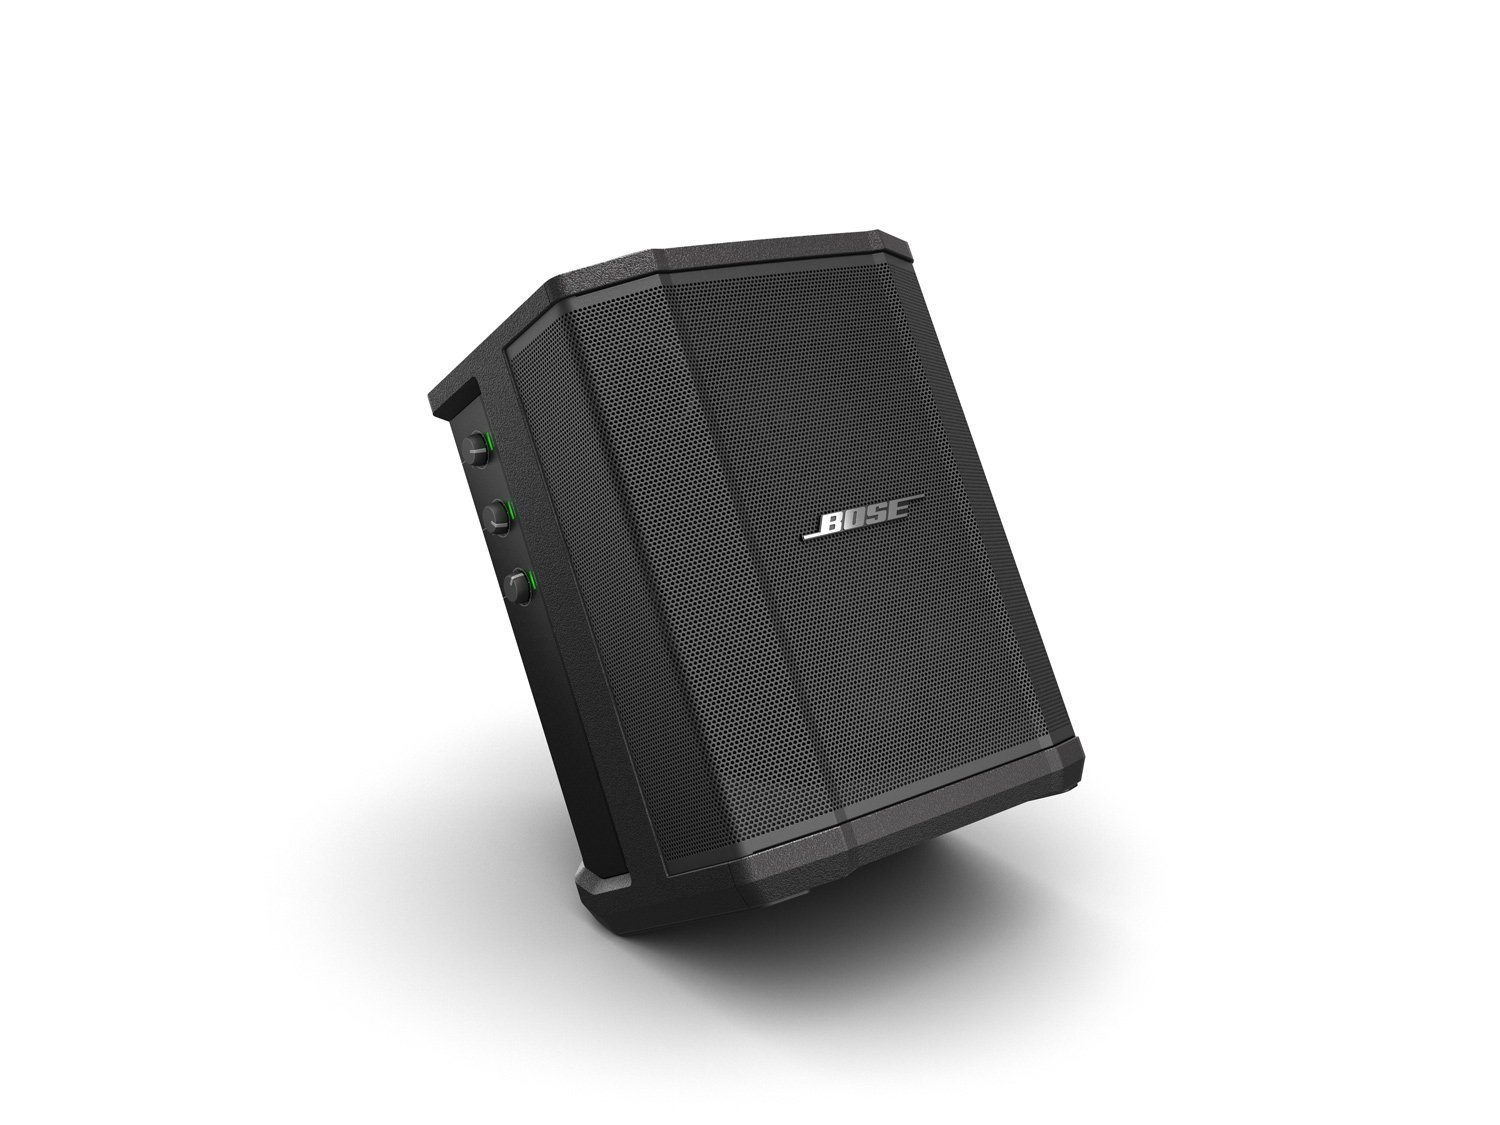 Bose S1 Pro Portable Bluetooth Speaker System w/ Battery - Black by Bose